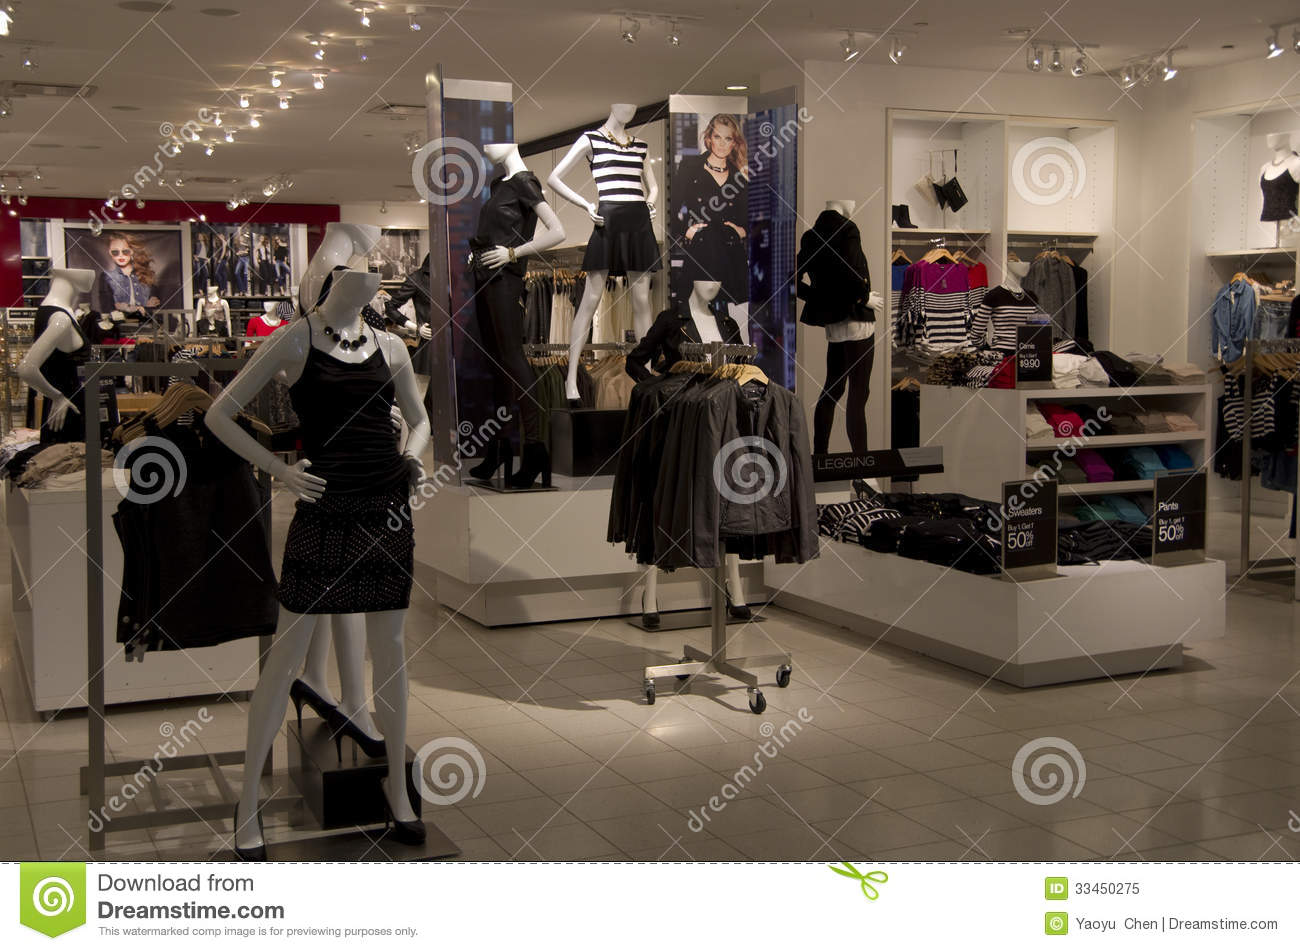 Women clothing stores Seattle clothing stores